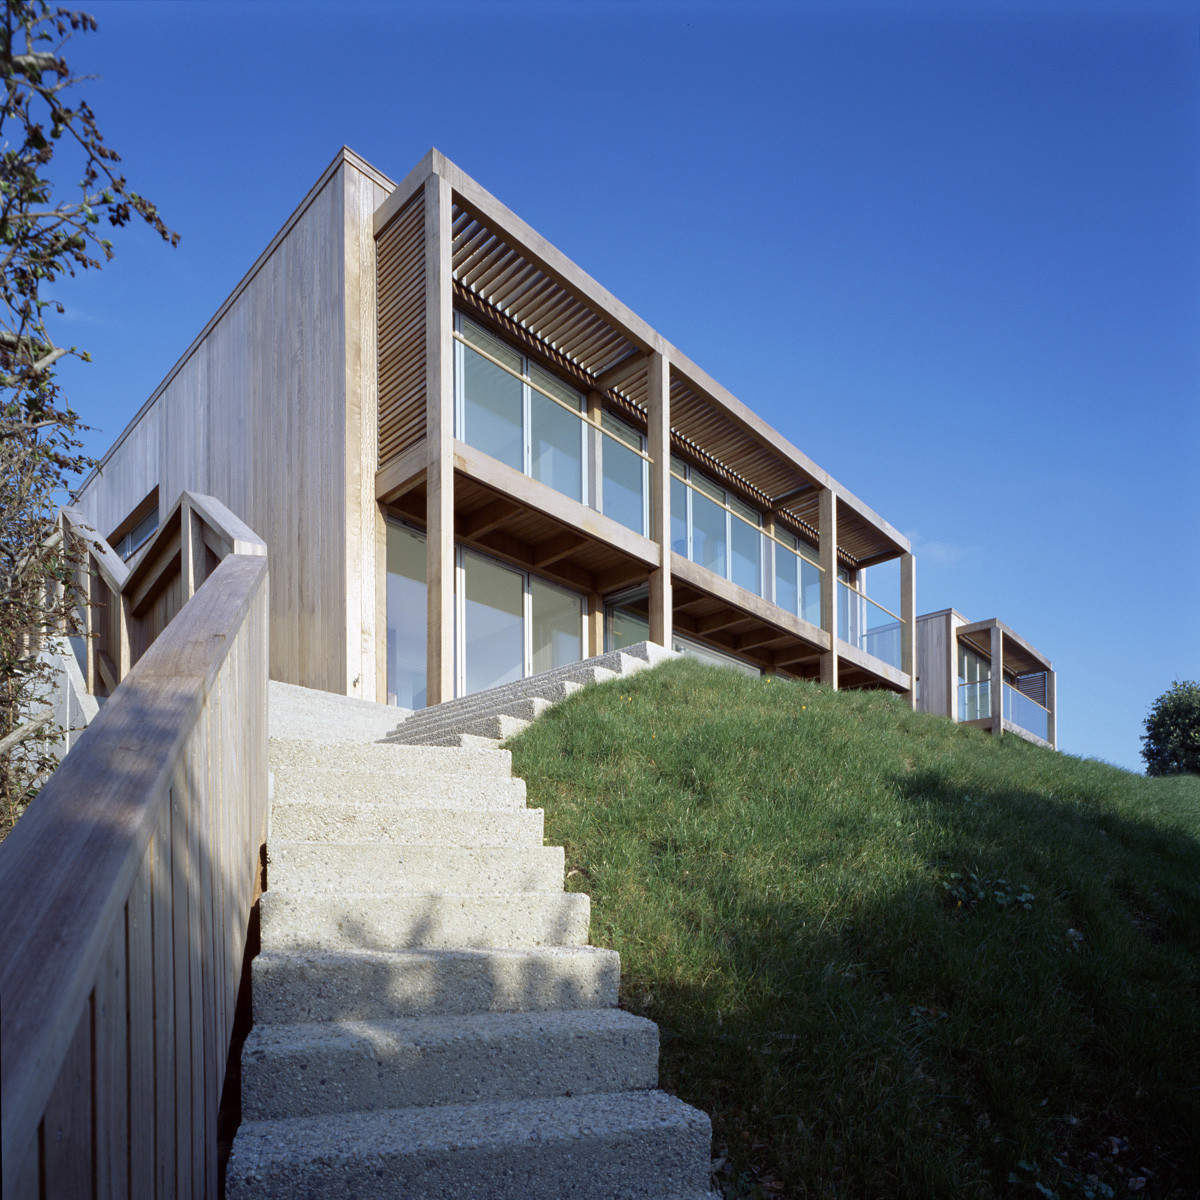 Porthtowan / Simon Conder Associates, Courtesy of Simon Conder Associates